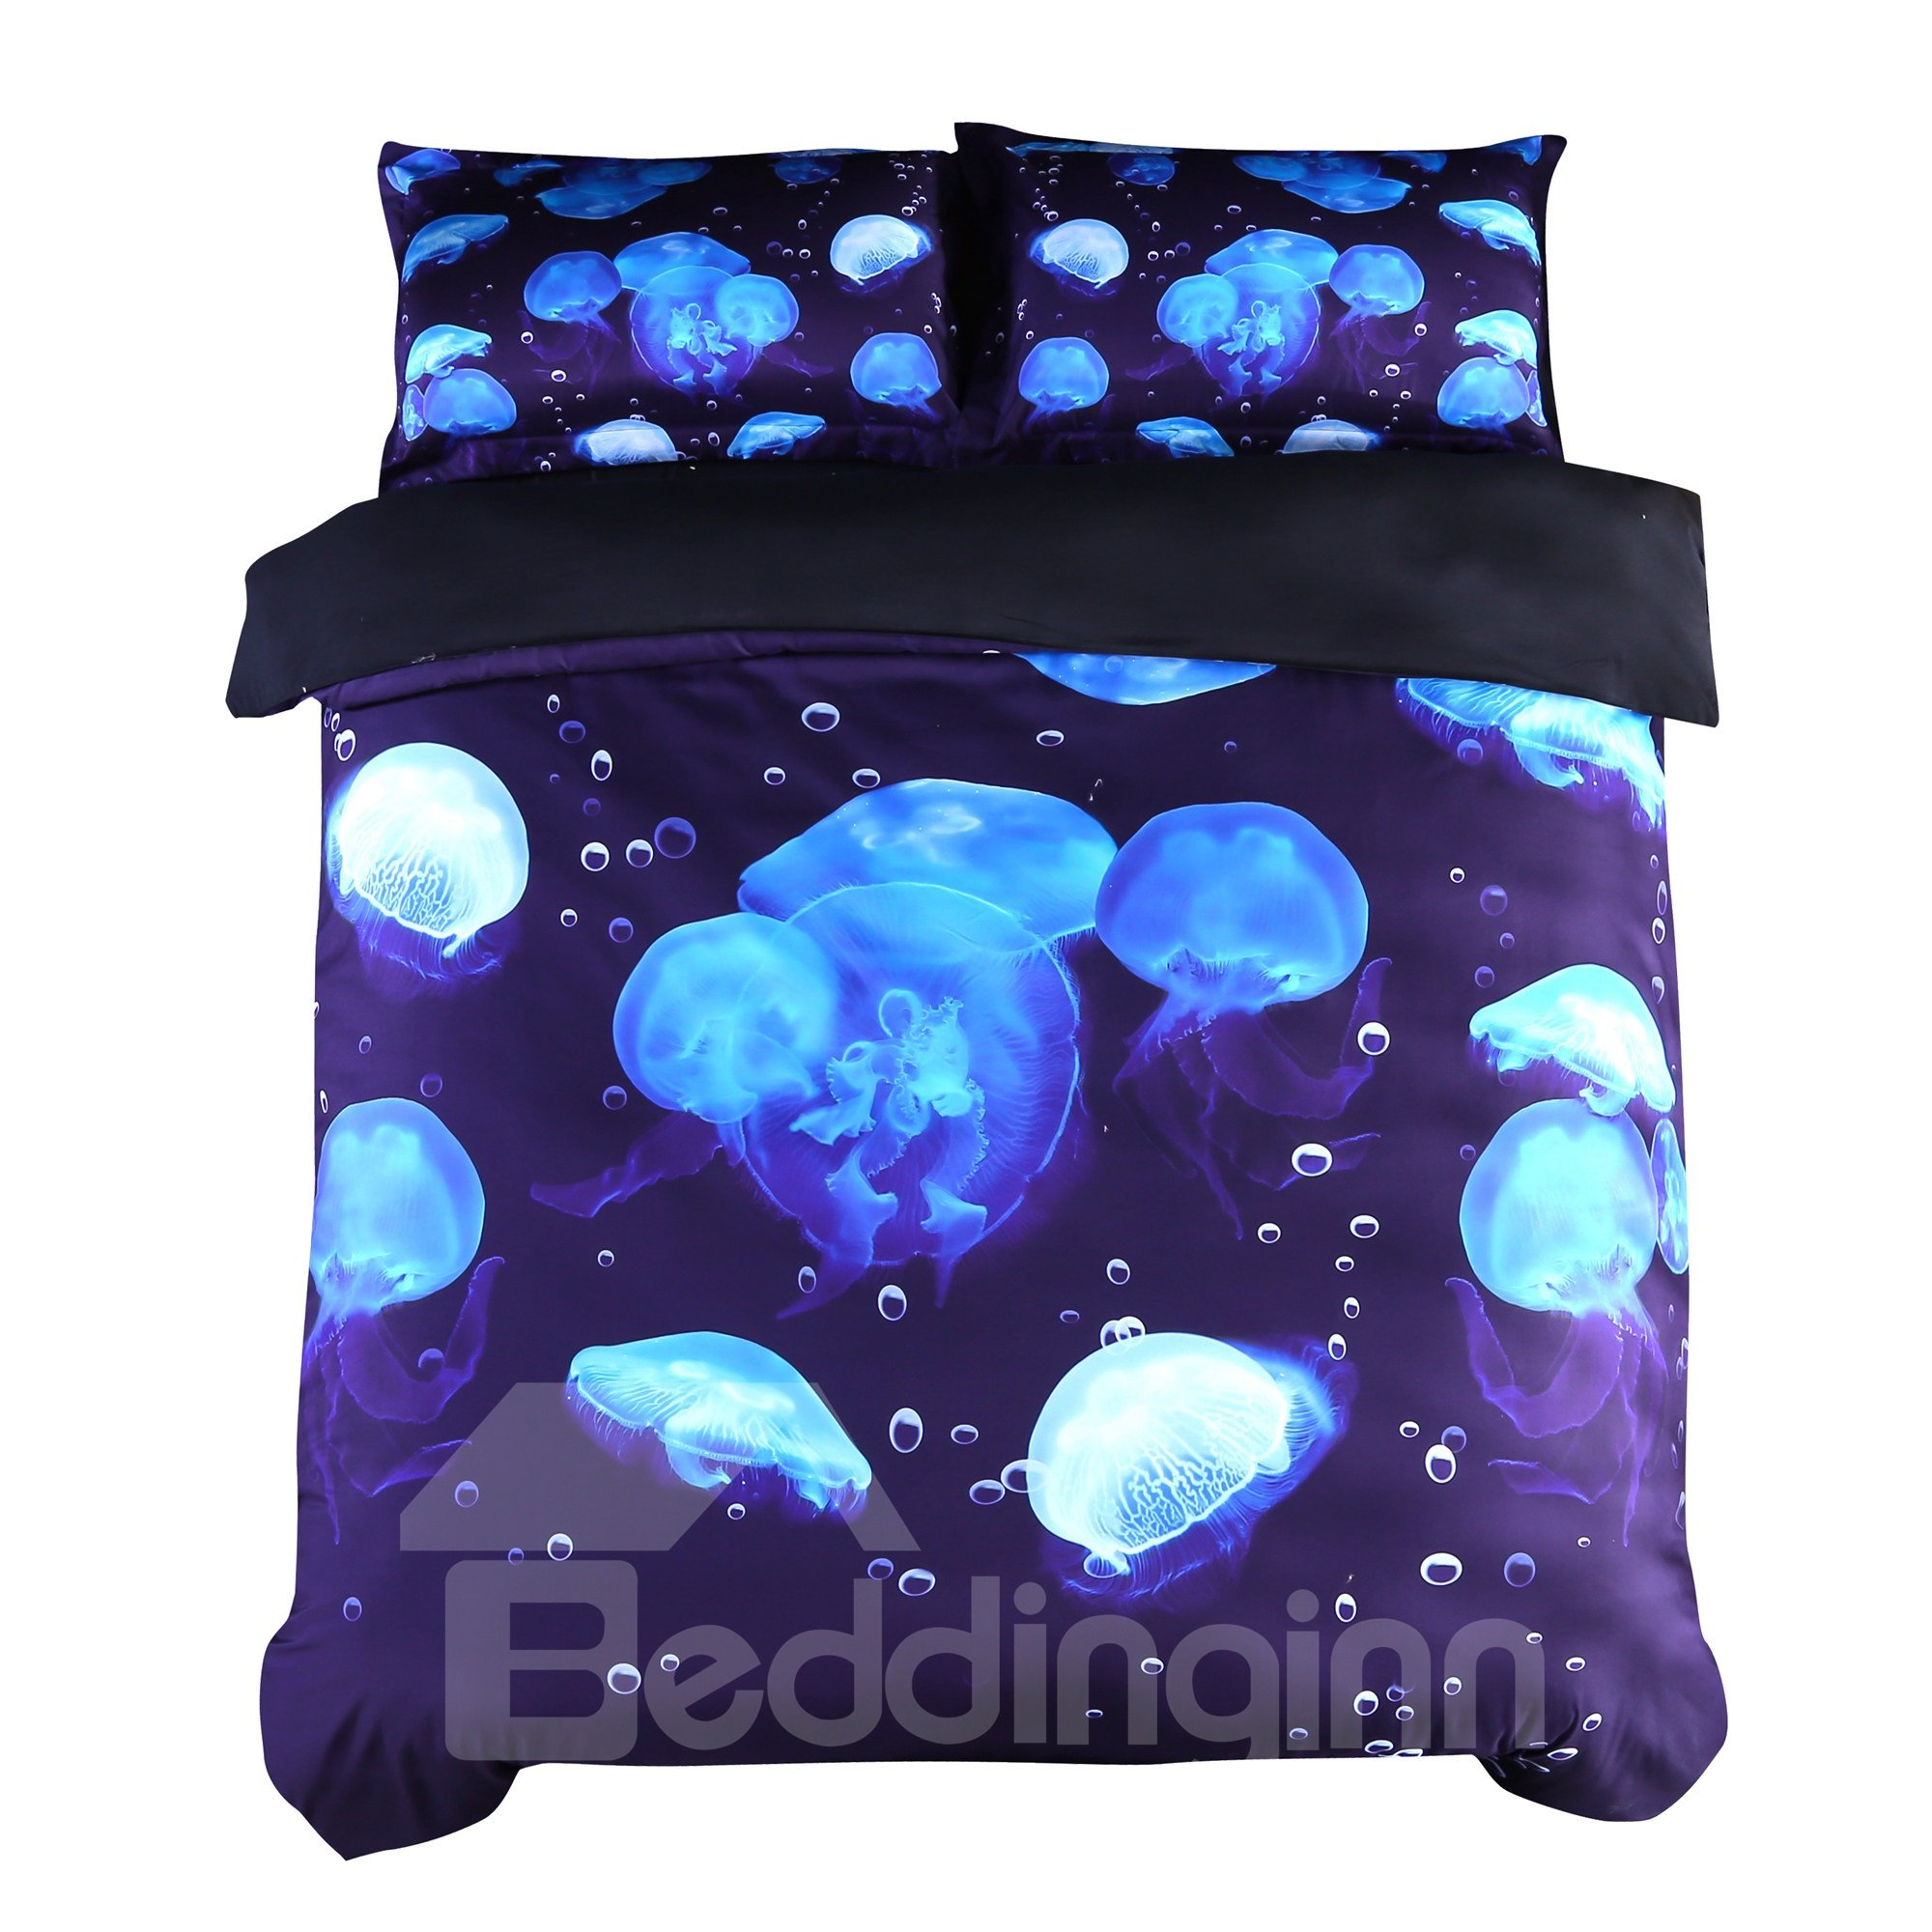 Floating Blue Jellyfish Printed Cotton 3D 4-Piece Bedding Sets/Duvet Covers